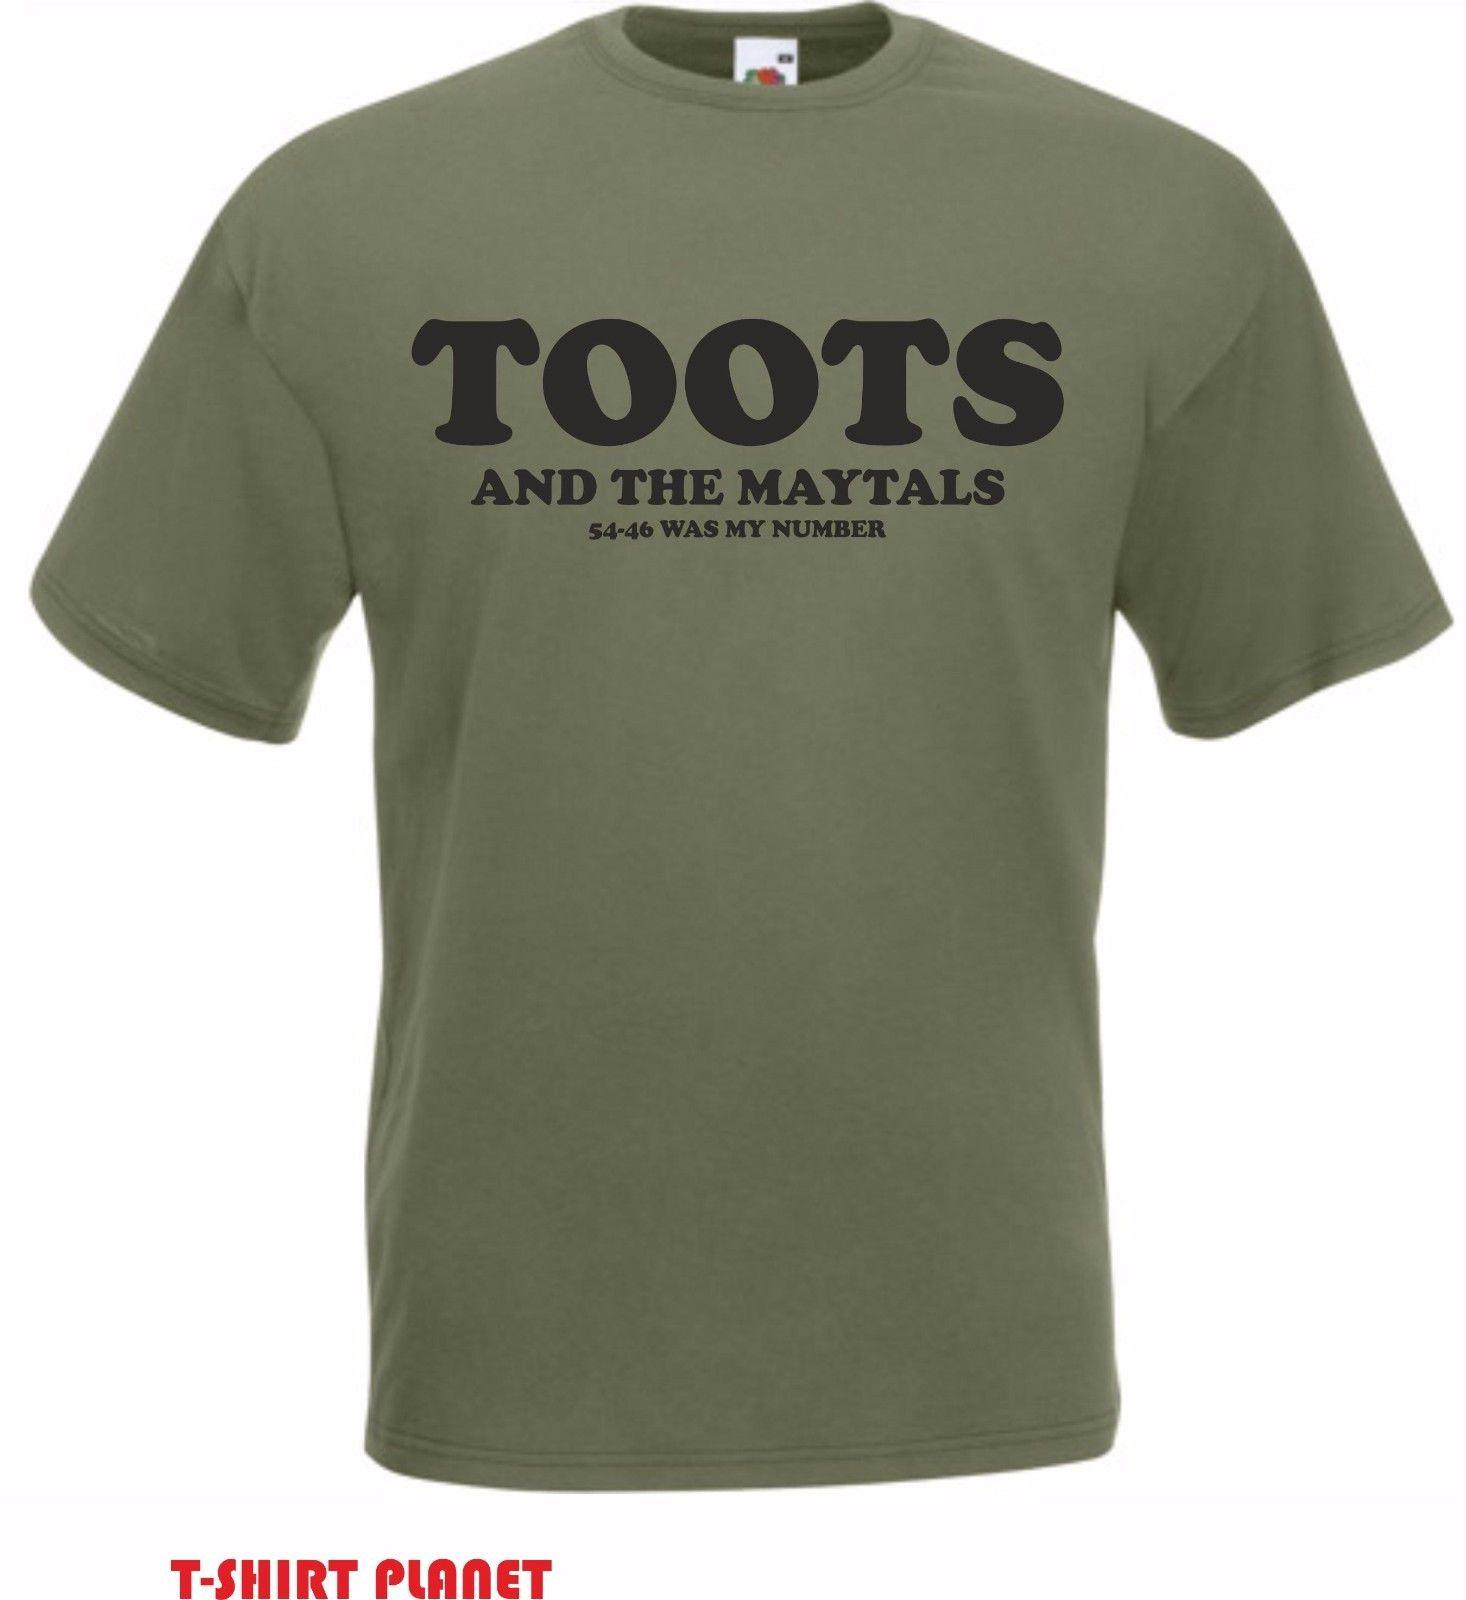 084d3fb4d8ff5 Toots   The Maytals 54 46 Was My Number T Shirt Reggae Icons Freedelivery  New T Shirts Funny Tops Tee New Unisex Funny Tops T Shirt Printing Shirts  From .